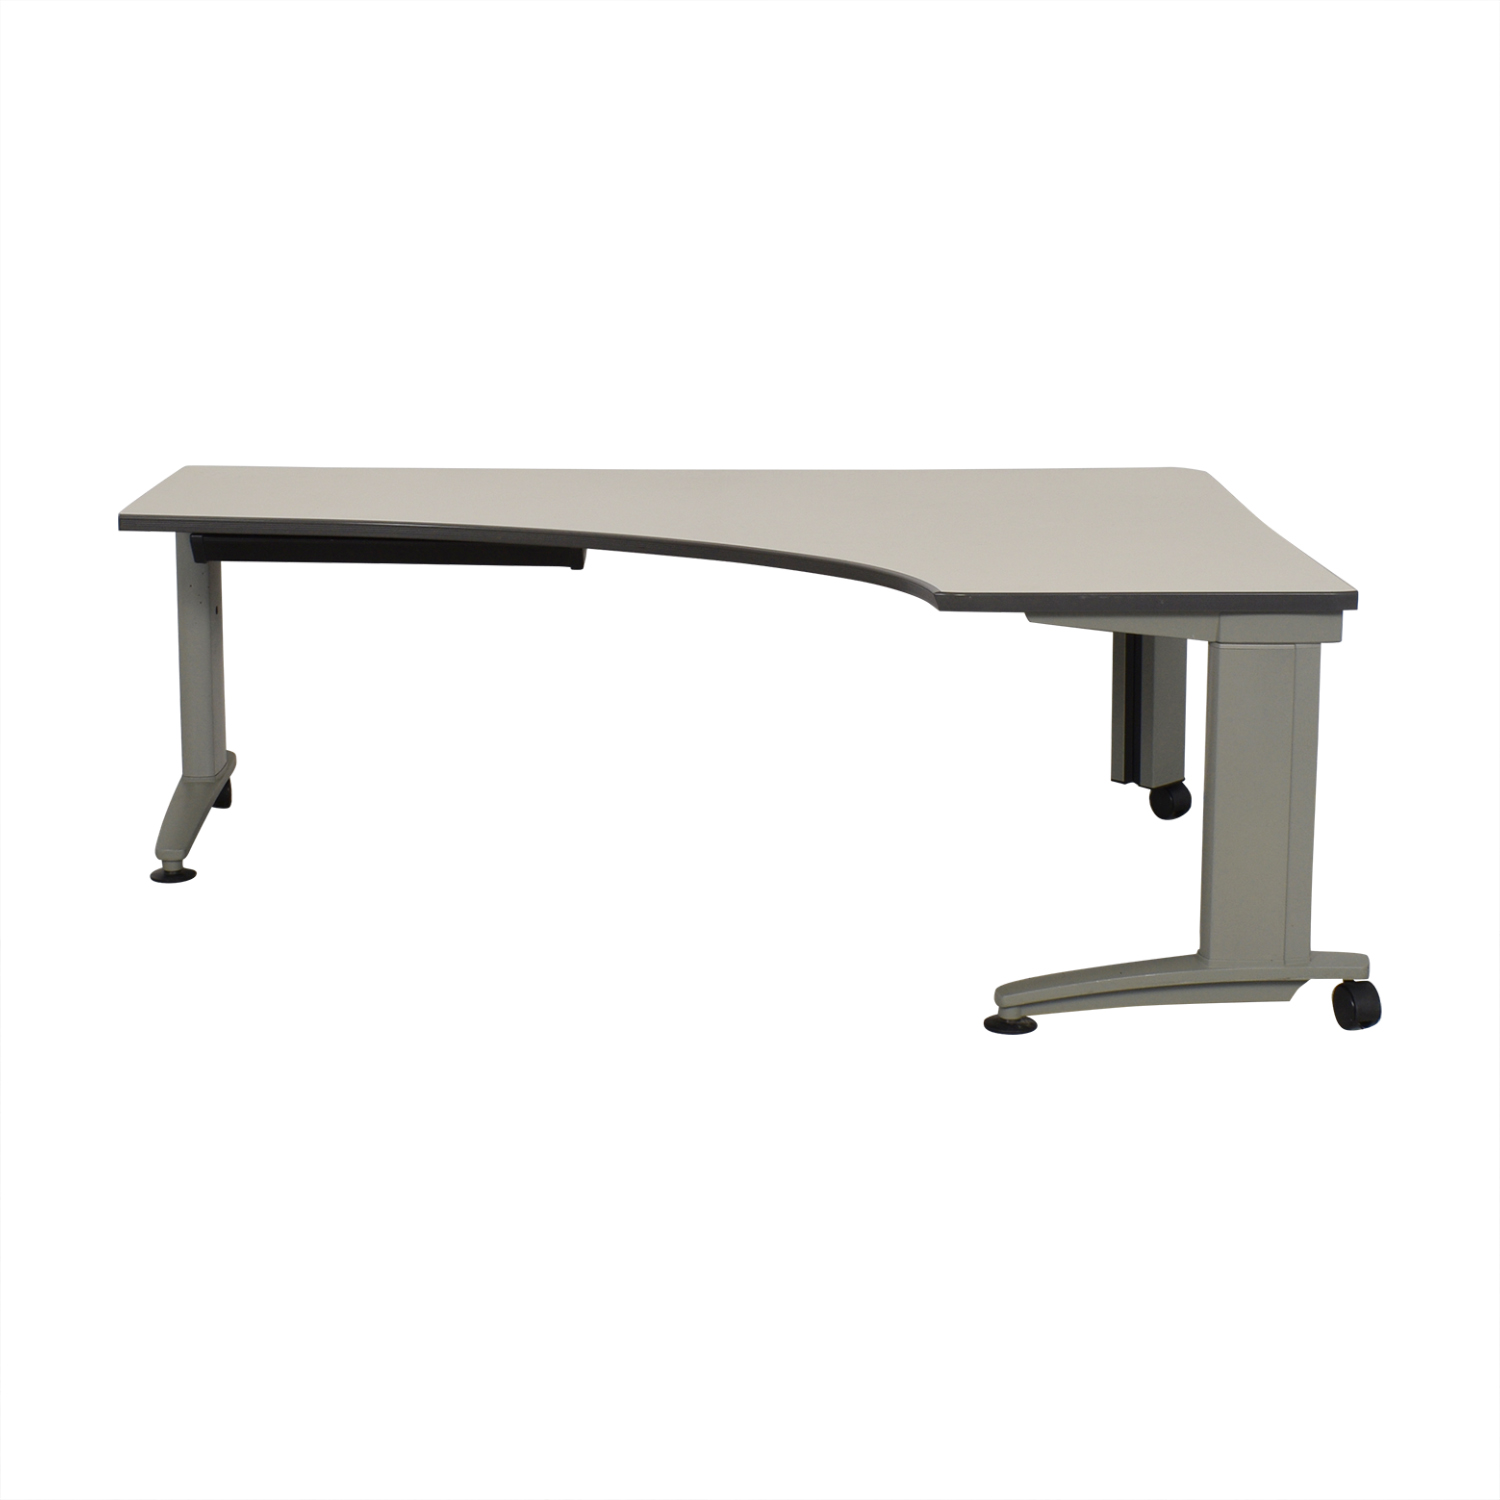 Knoll Knoll Currents Table Corner Desk nyc